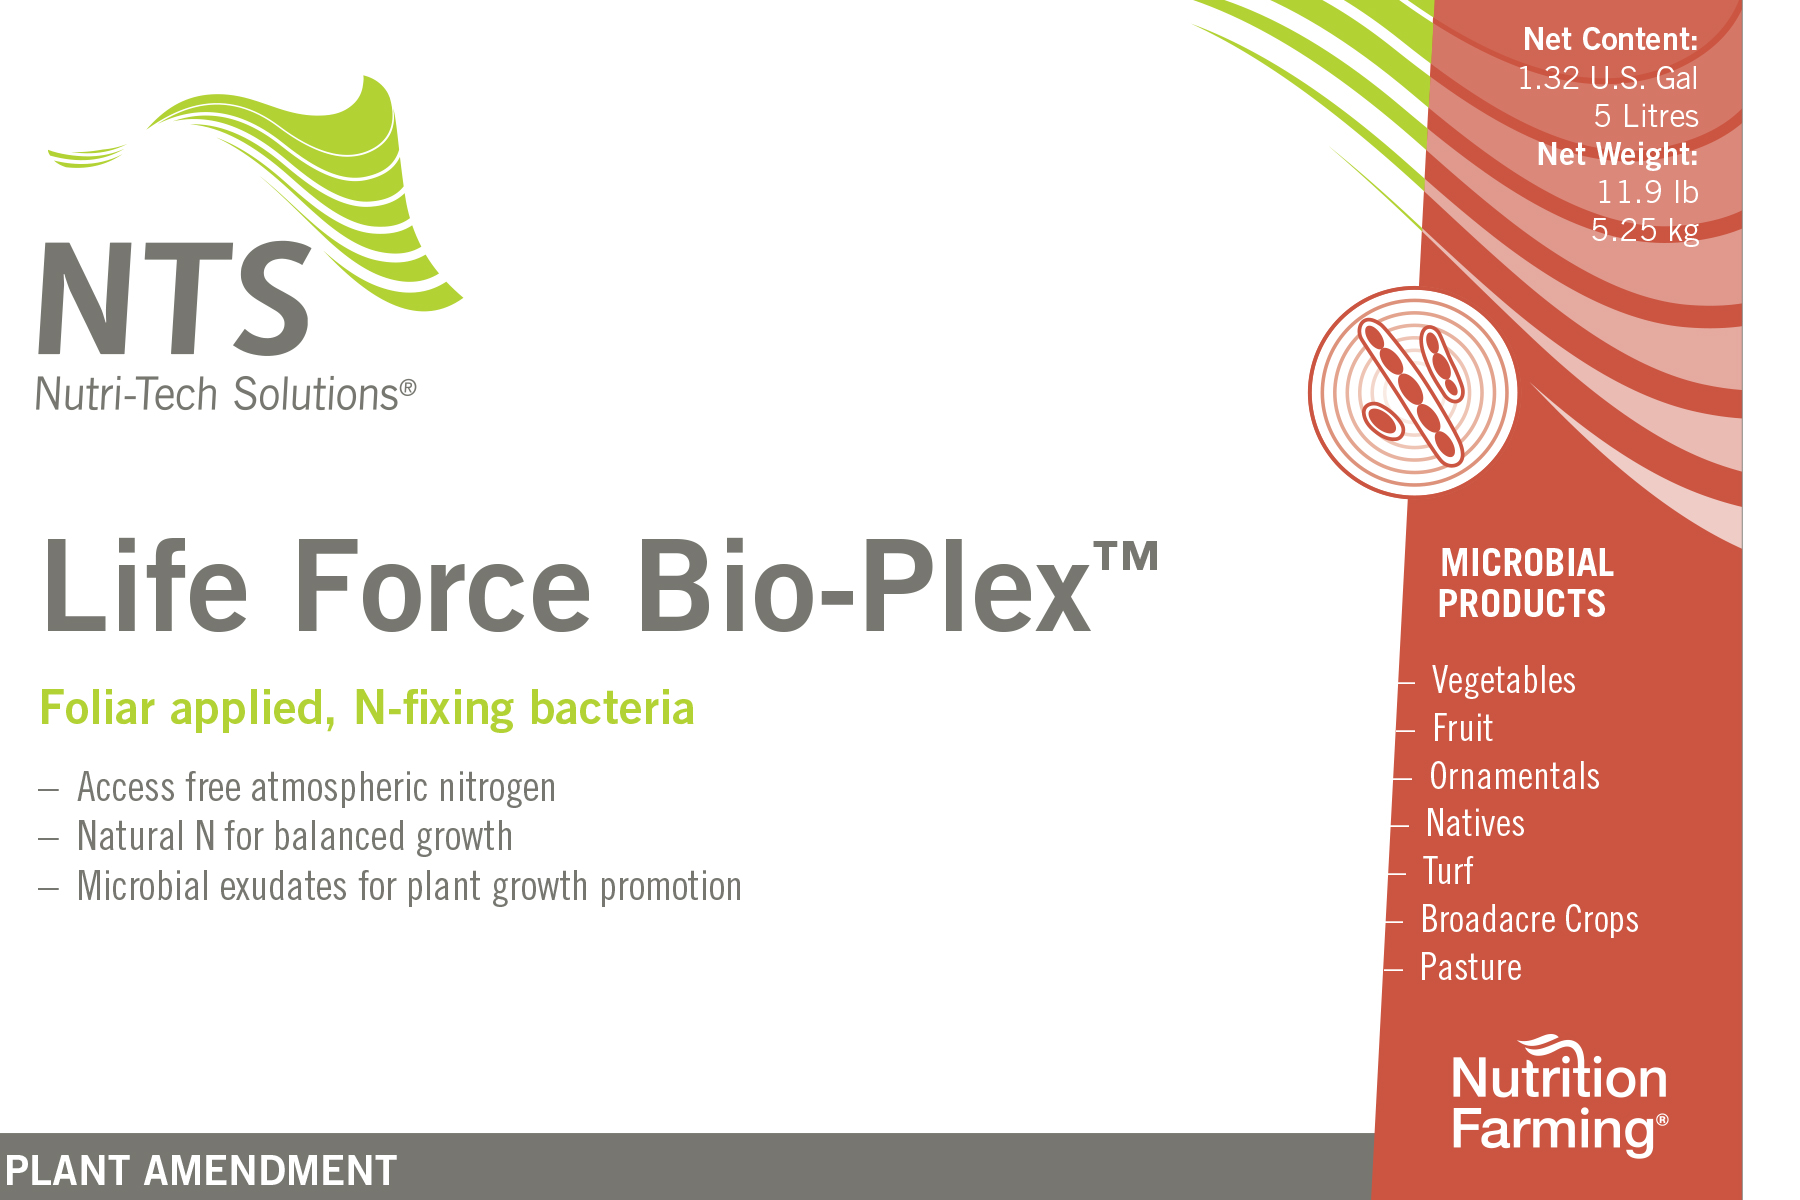 Life Force Bio-Plex product label